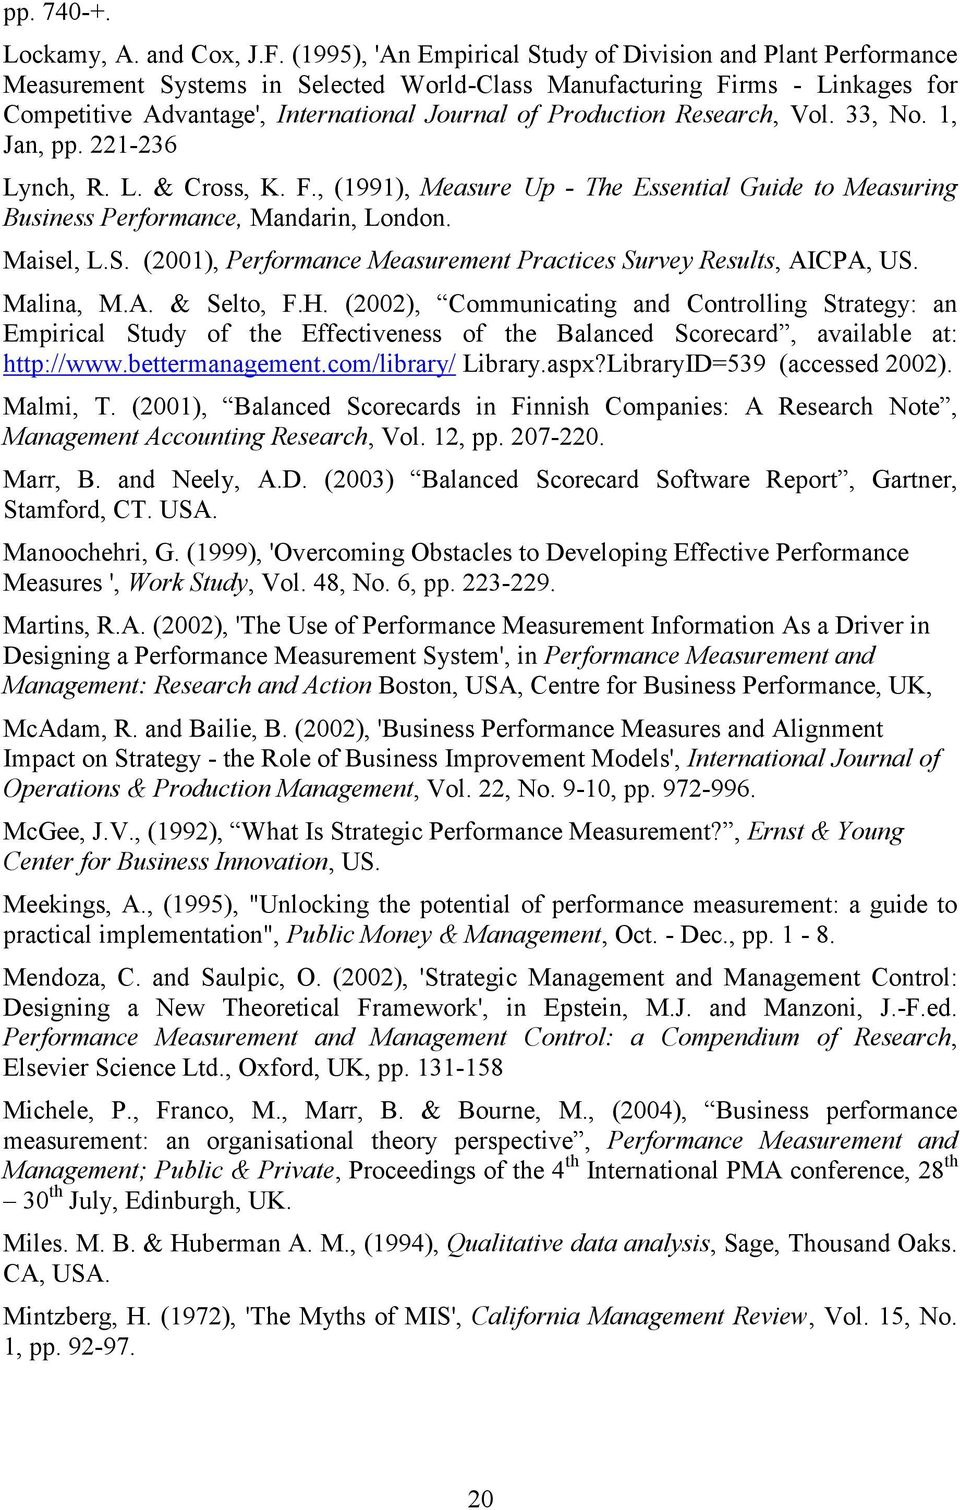 Production Research, Vol. 33, No. 1, Jan, pp. 221-236 Lynch, R. L. & Cross, K. F., (1991), Measure Up - The Essential Guide to Measuring Business Performance, Mandarin, London. Maisel, L.S.